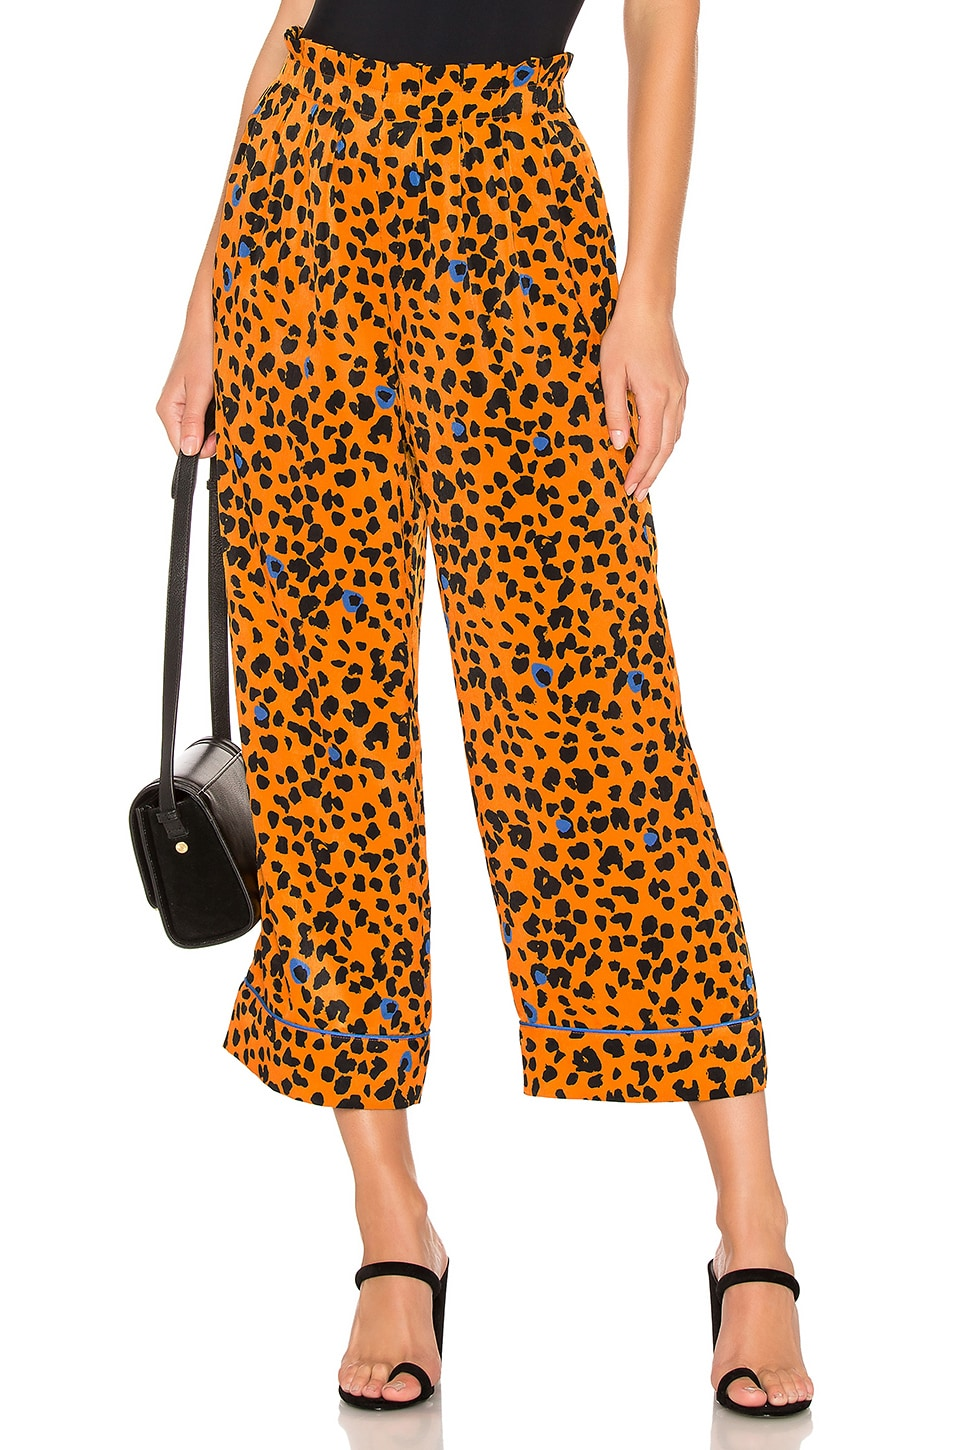 House of Harlow 1960 x REVOLVE Bonnie Pant in Copper Leopard